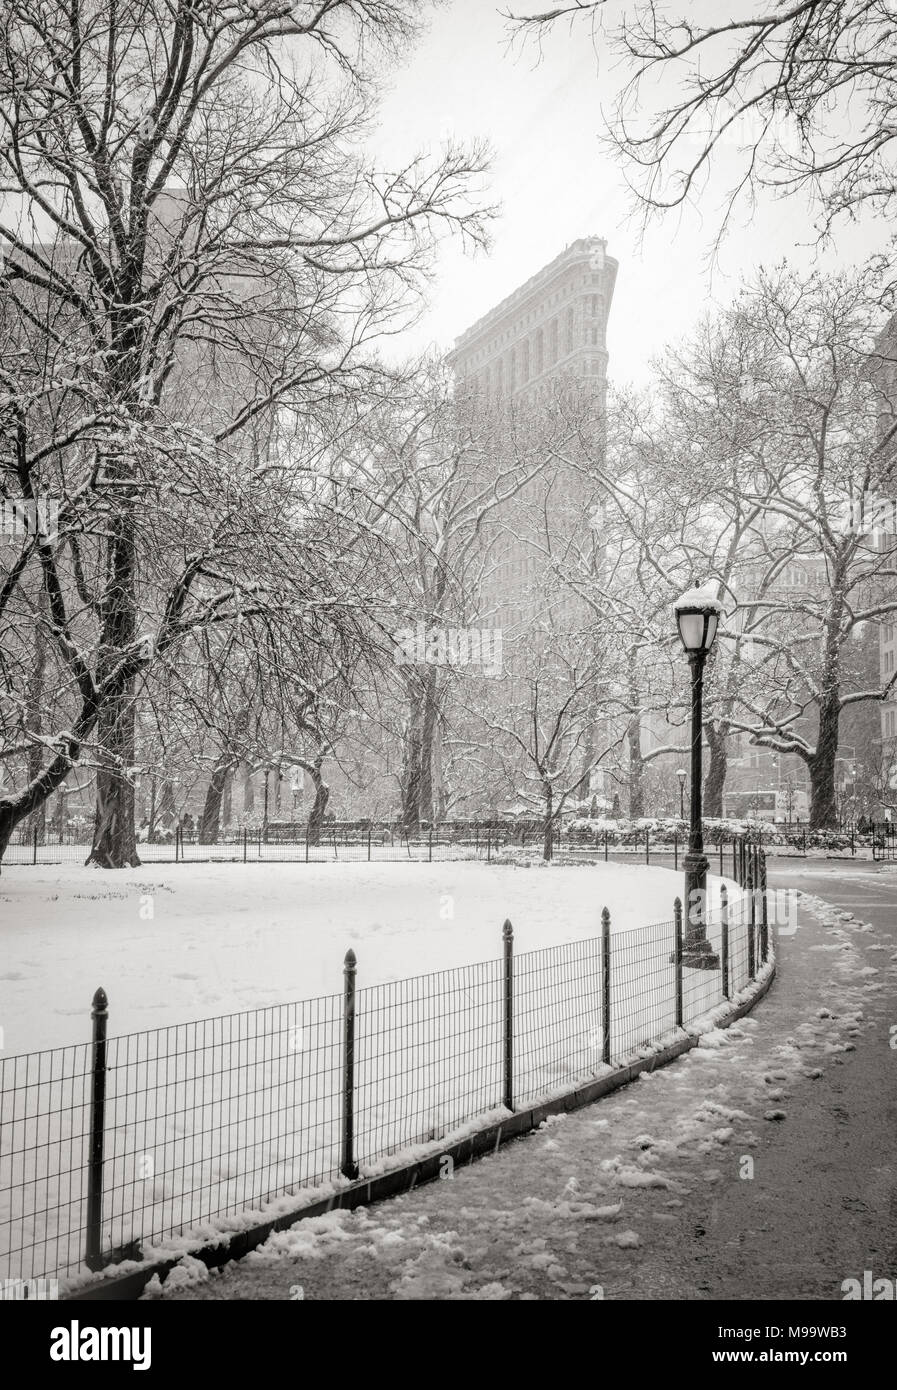 New York City, NY, USA - March 21, 2018: Flatiron Building from Madison Square Park with snowfall. (Black & White) Flatiron District, Manhattan - Stock Image